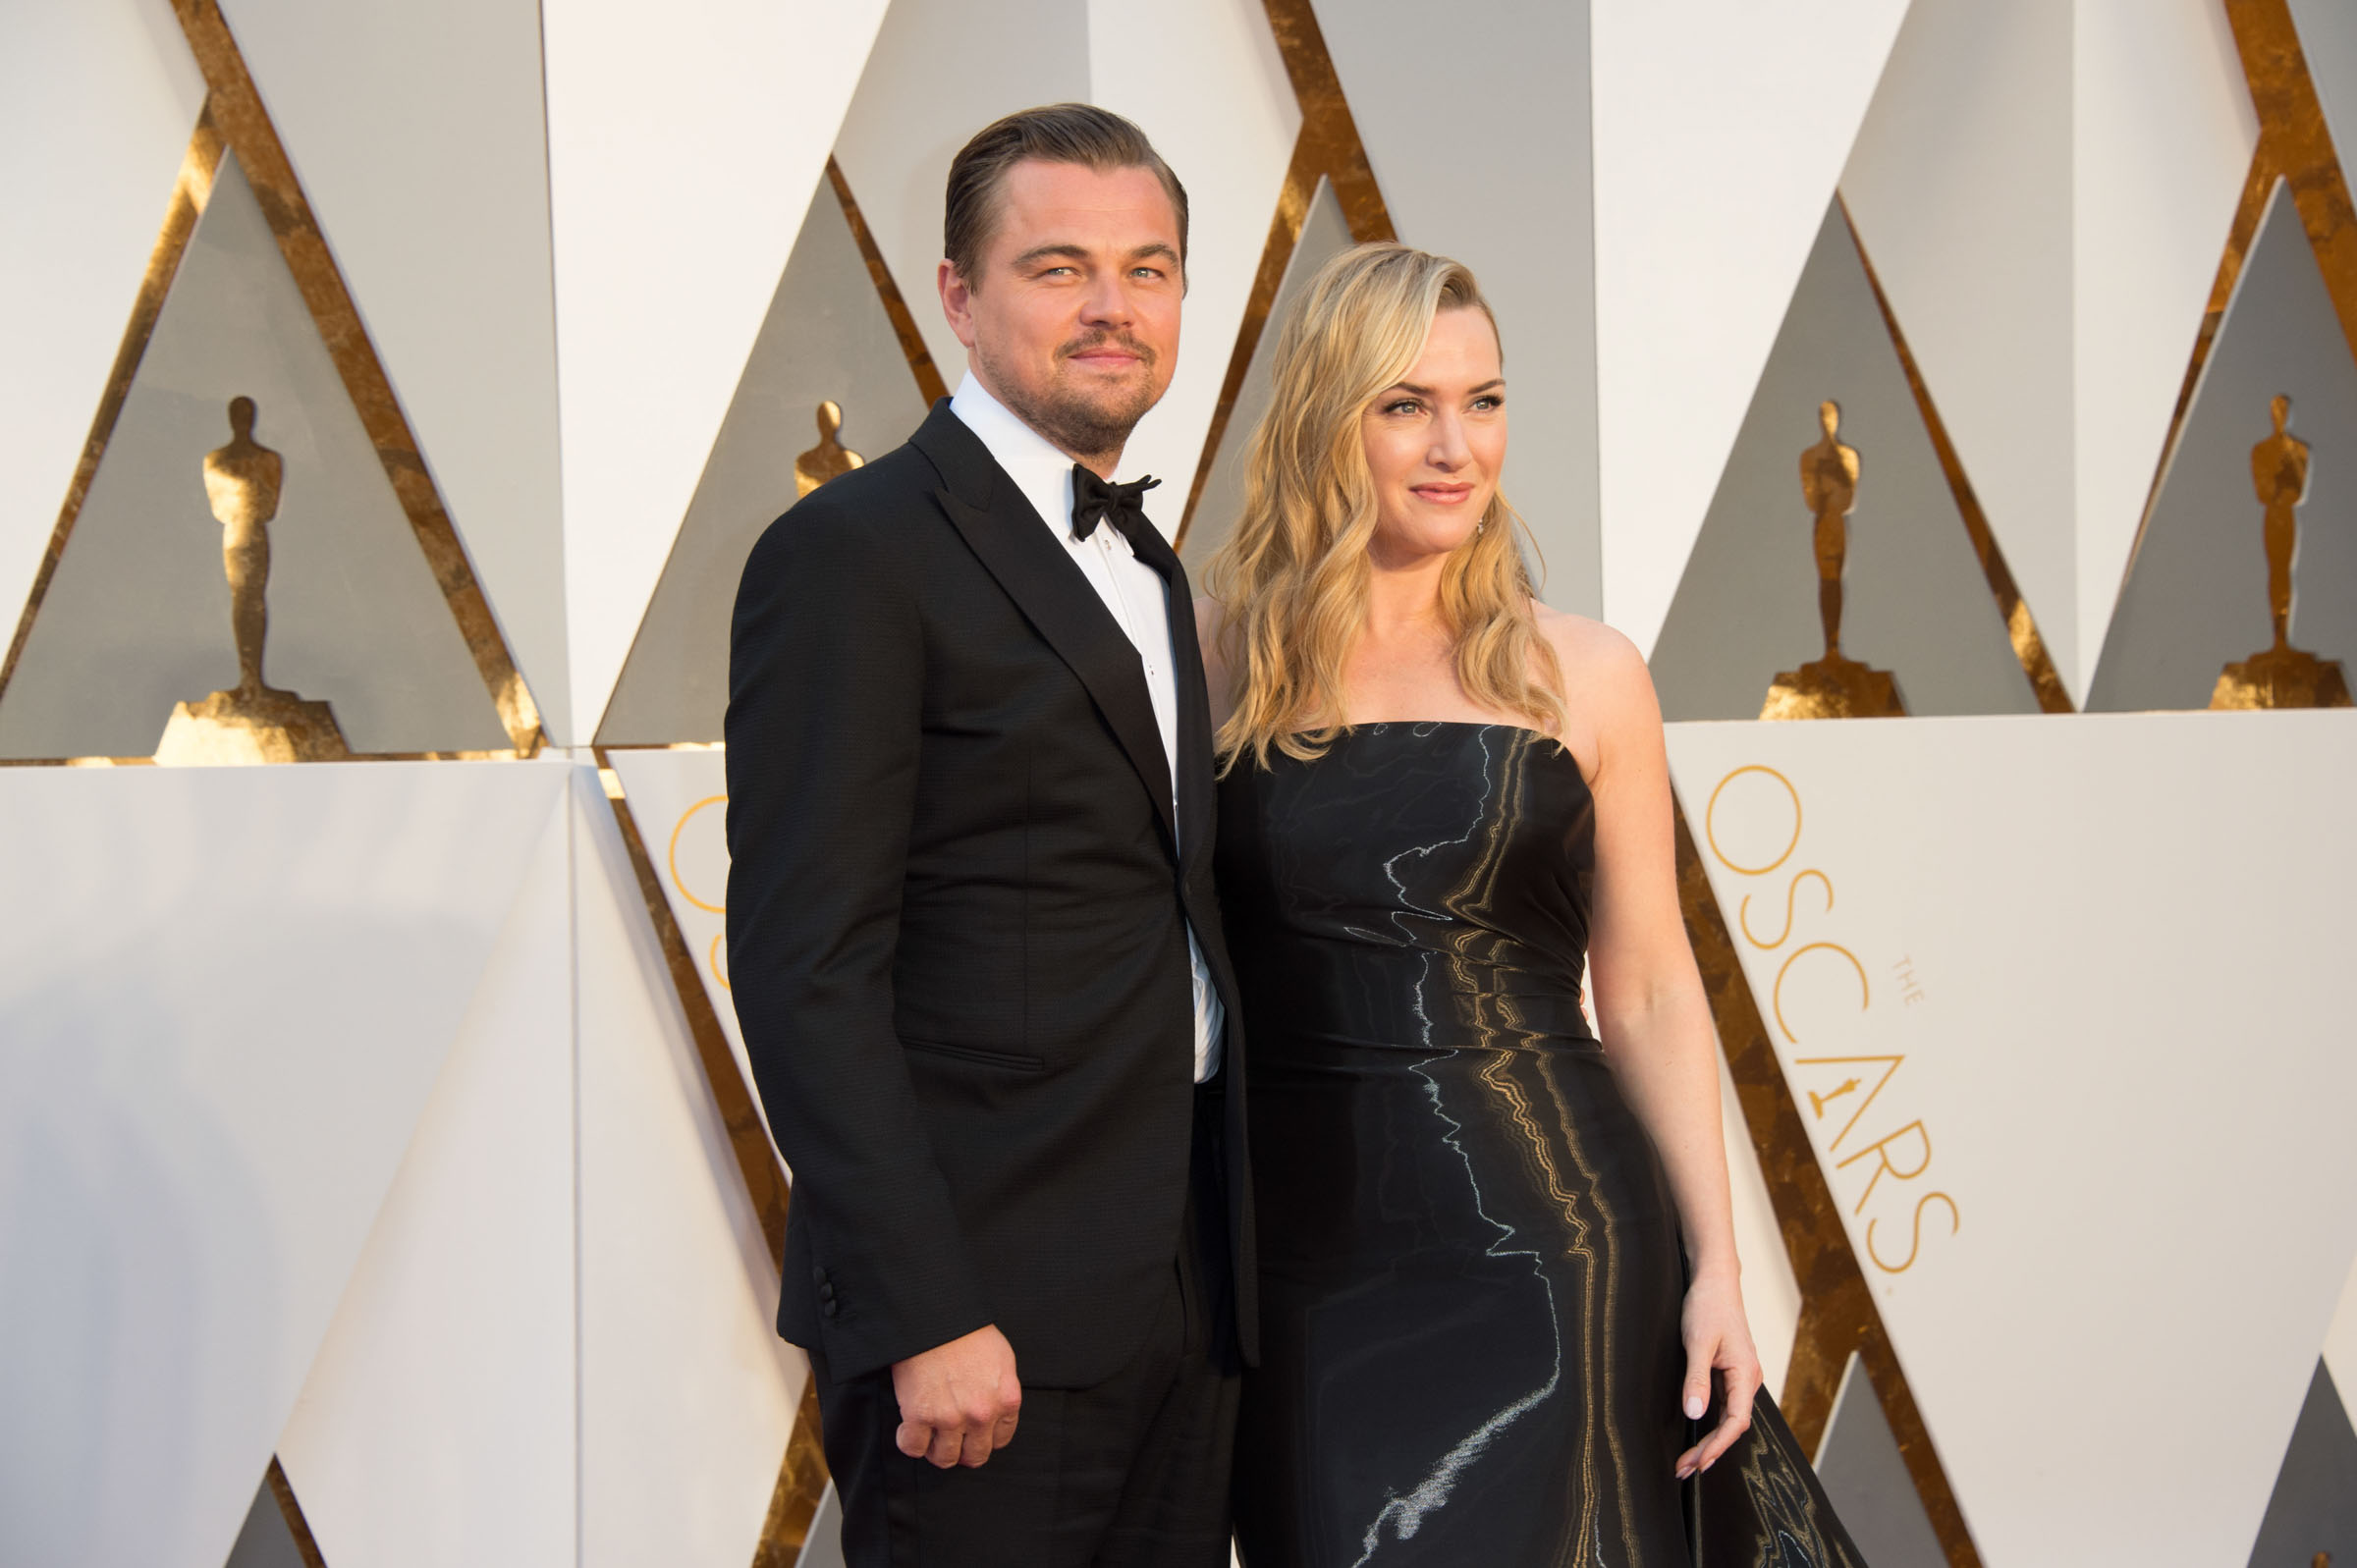 Oscar®-nominees, Leonardo DiCaprio and Kate Winslet, arrive at The 88th Oscars® at the Dolby® Theatre in Hollywood, CA on Sunday, February 28, 2016. Photo Credit: Aaron Poole / ©A.M.P.A.S.